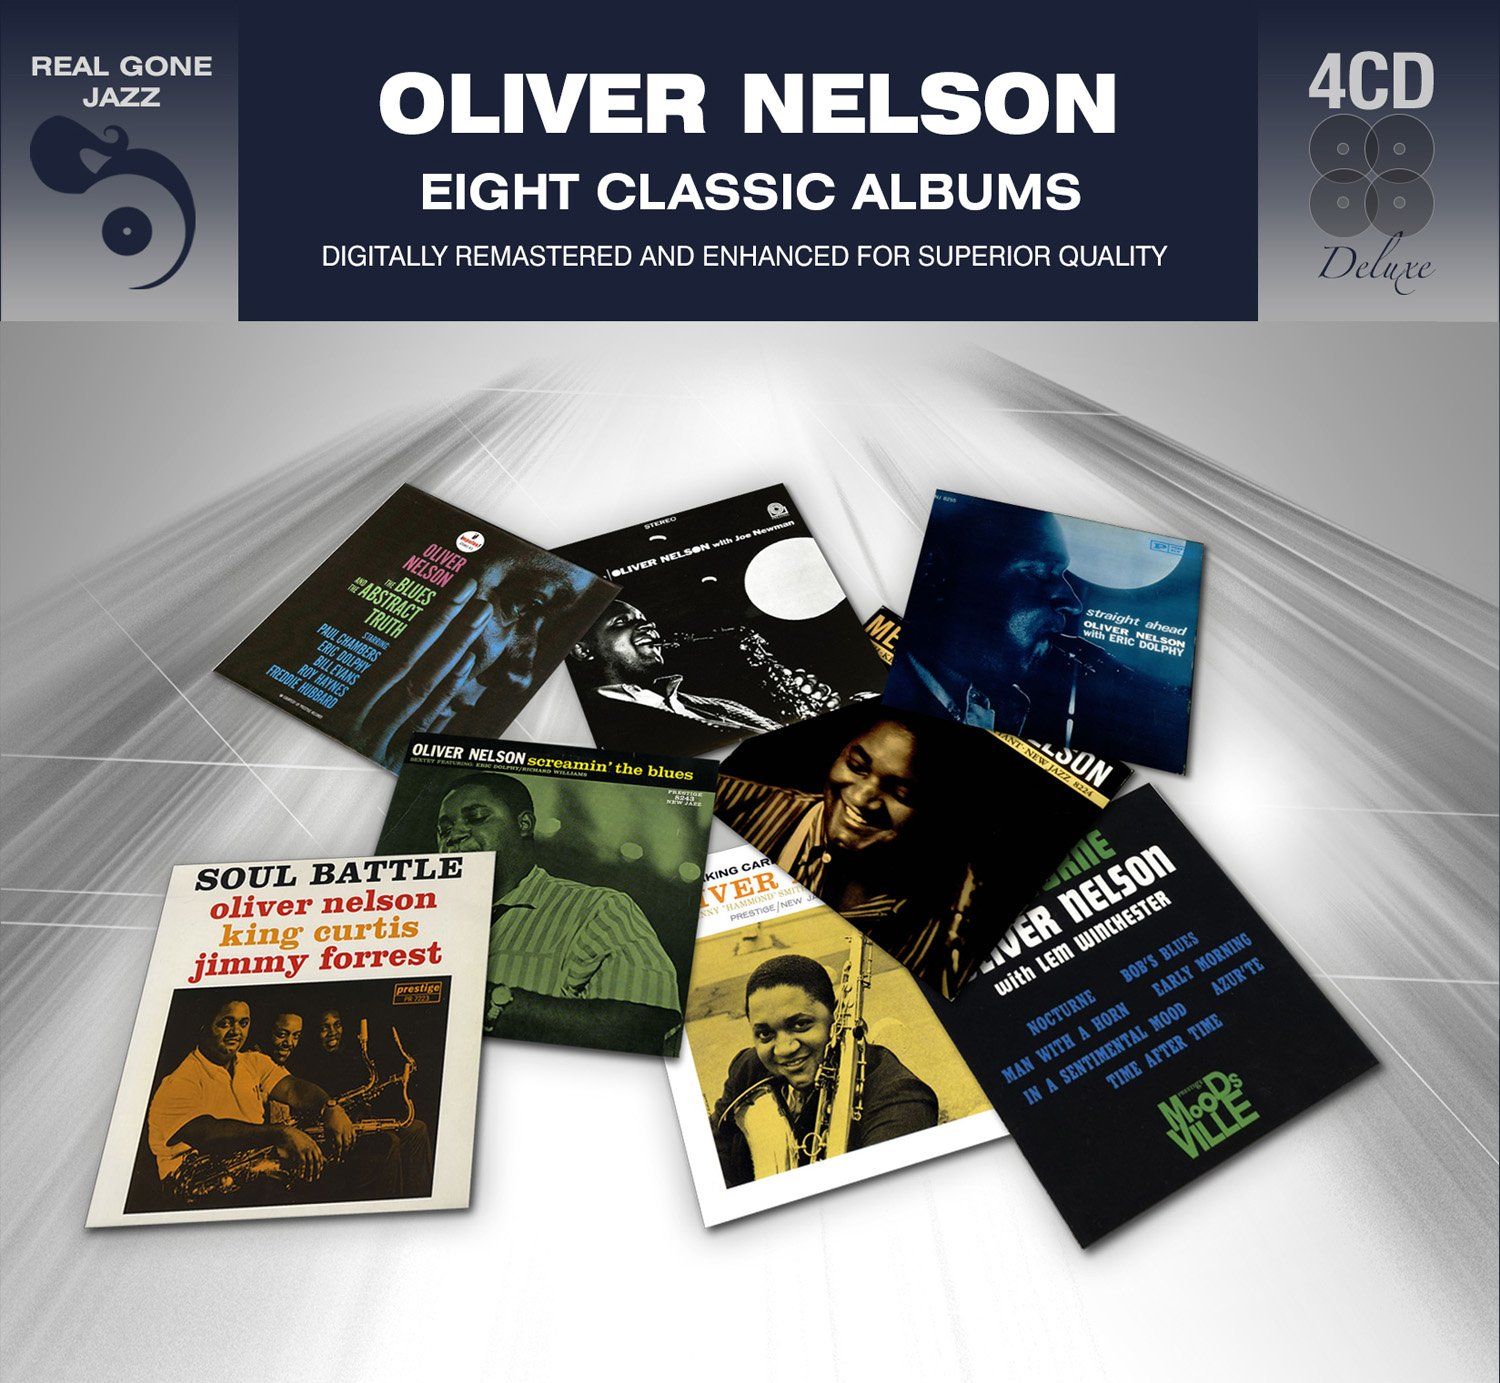 8 Classic Albums - Oliver Nelson by Real Gone Jazz